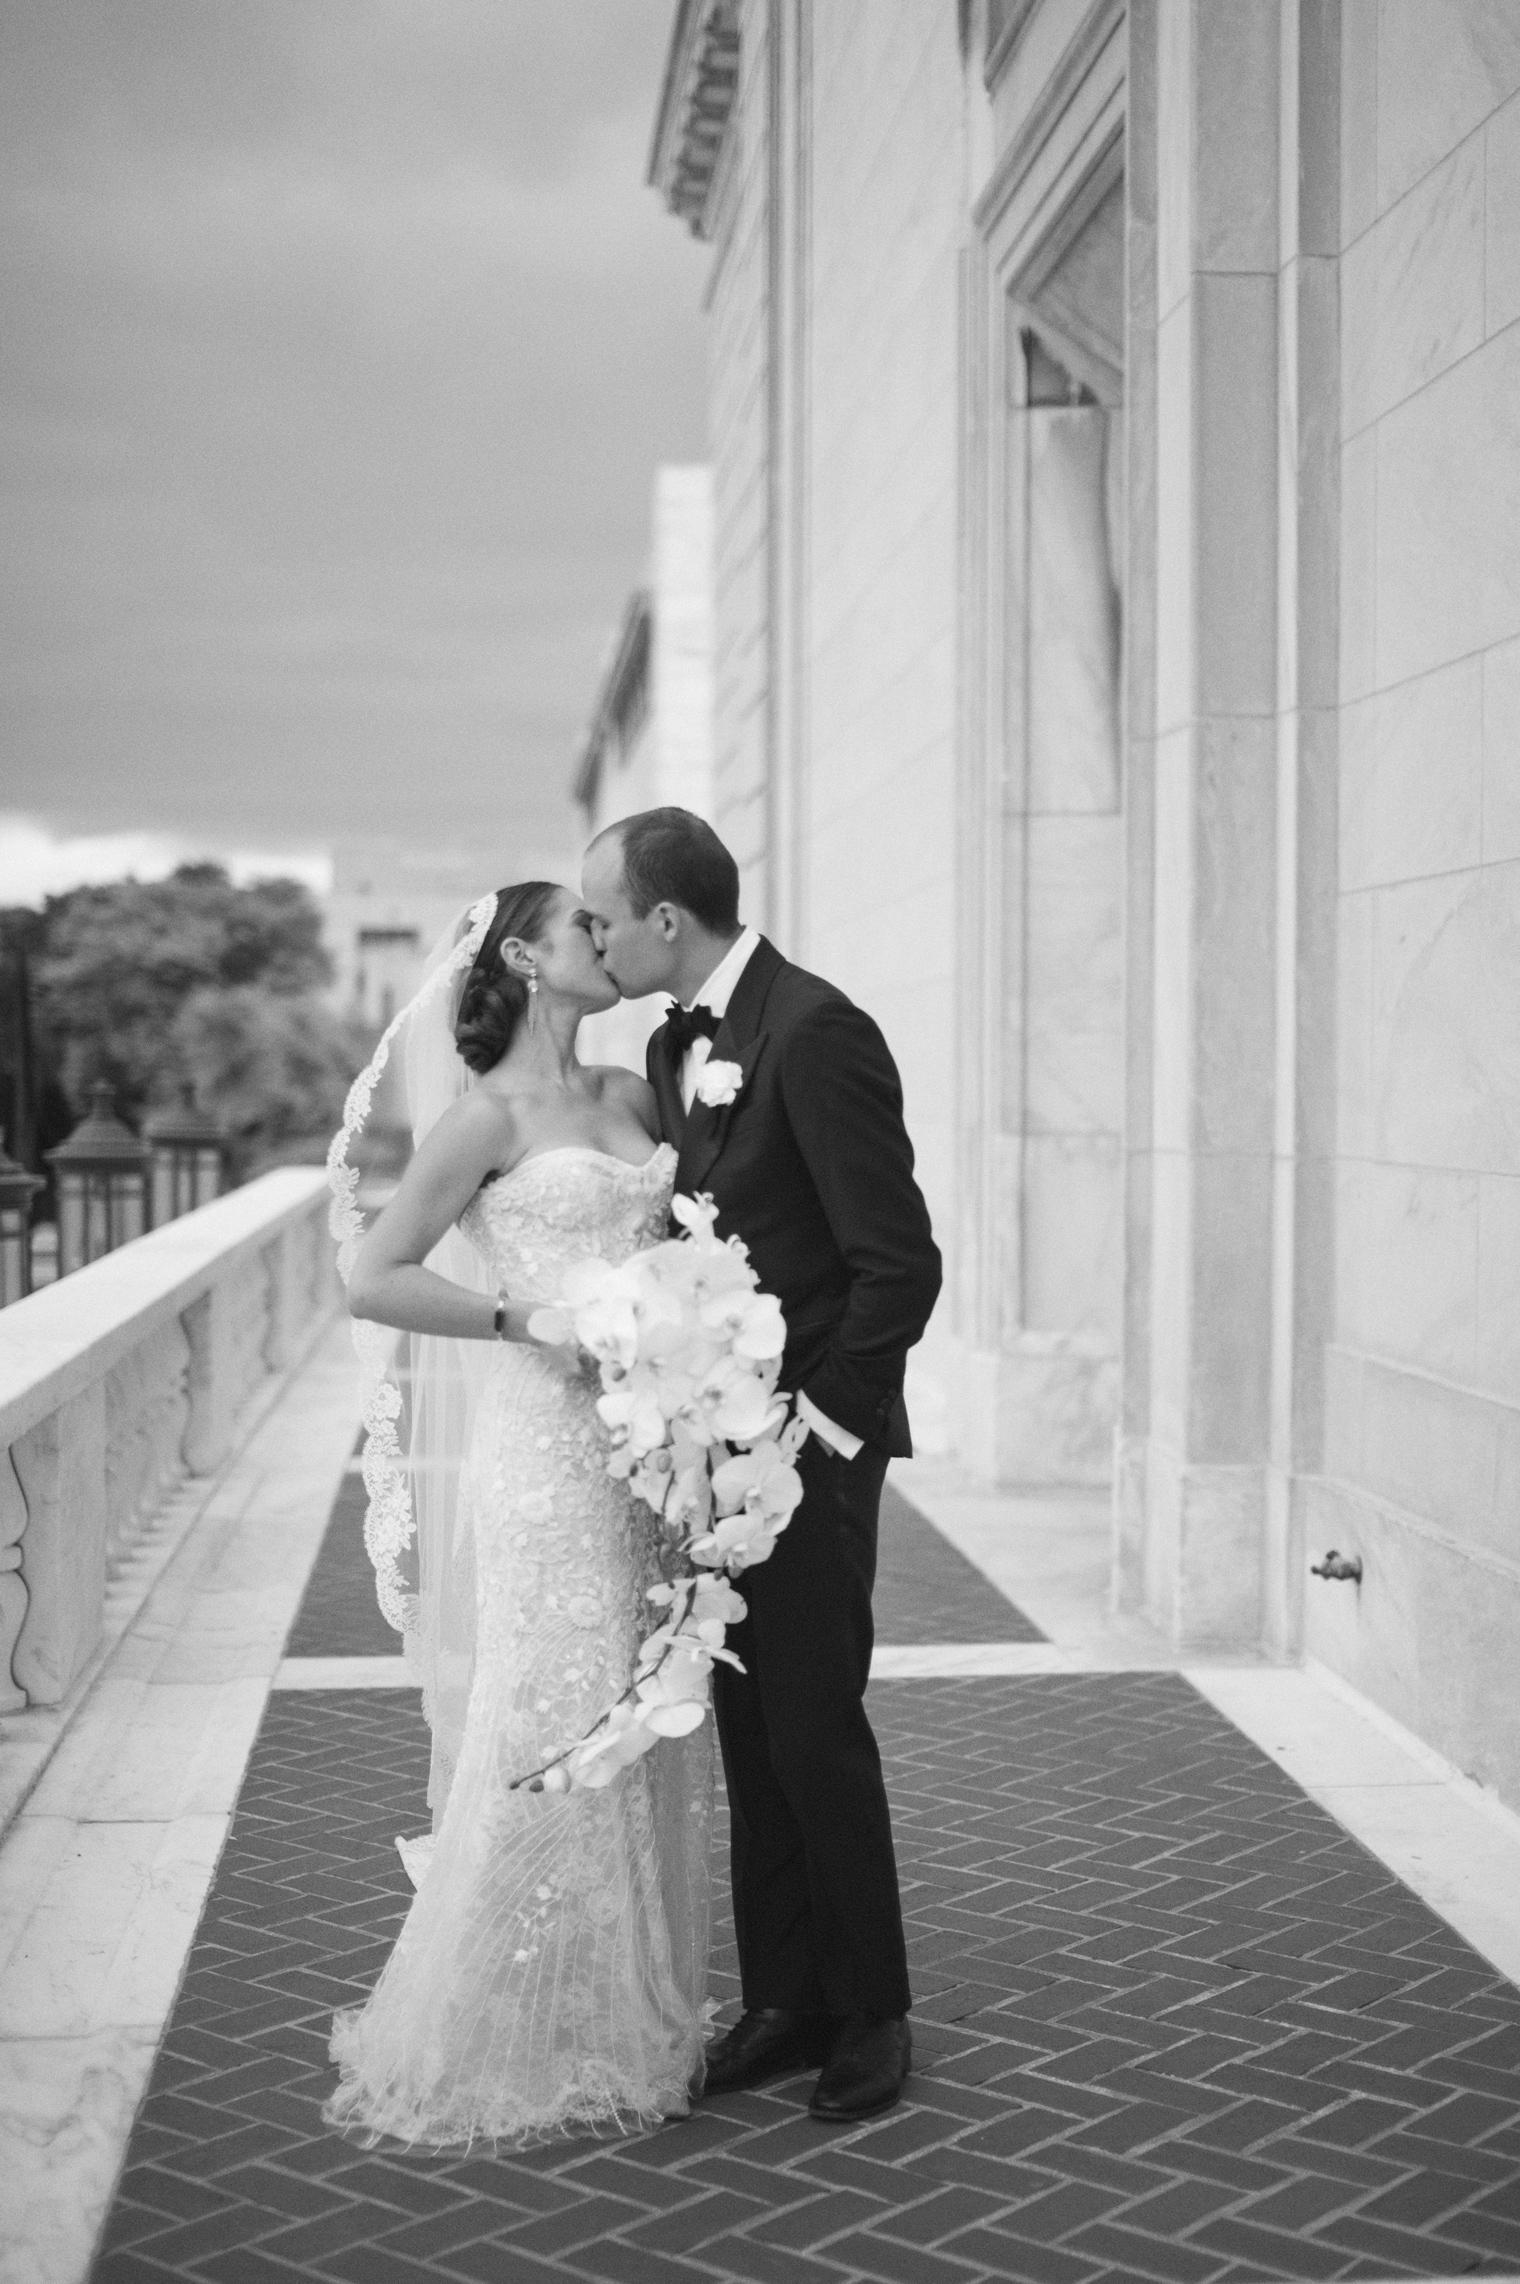 Old school glamour bride and groom portraits at the Detroit Institute of Arts by Wedding Photographer Heather Jowett.